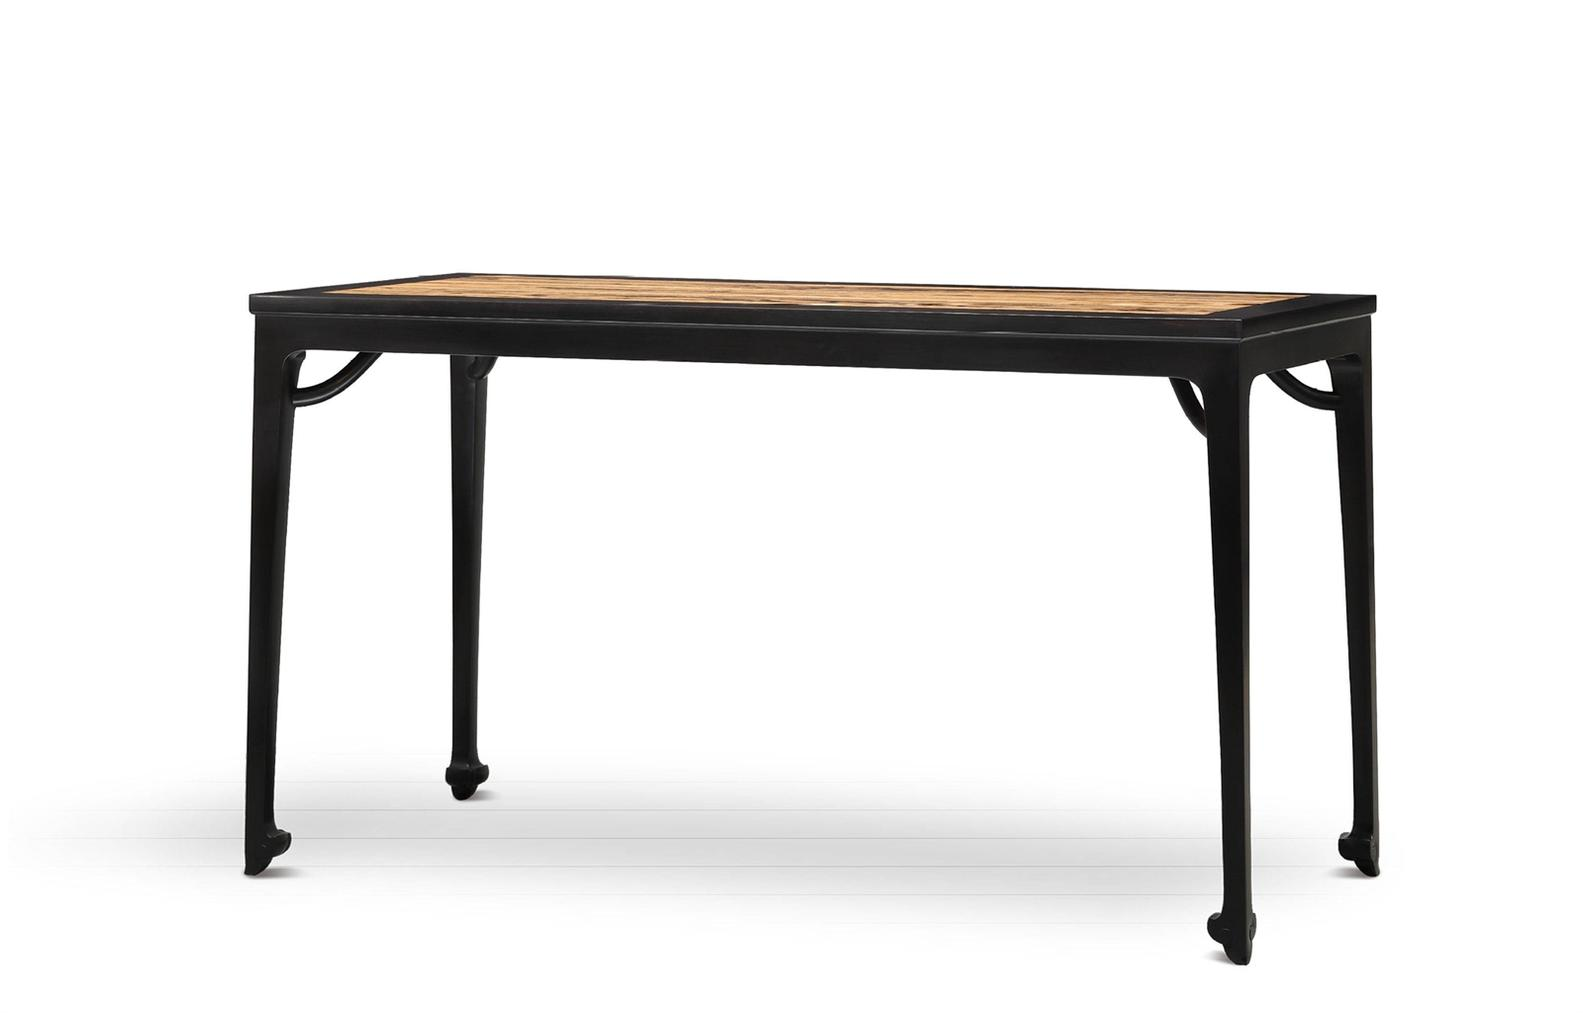 Shen Ping and Zhou Mo - A Black Persimmon-Inset African Blackwood Rectangular Desk-